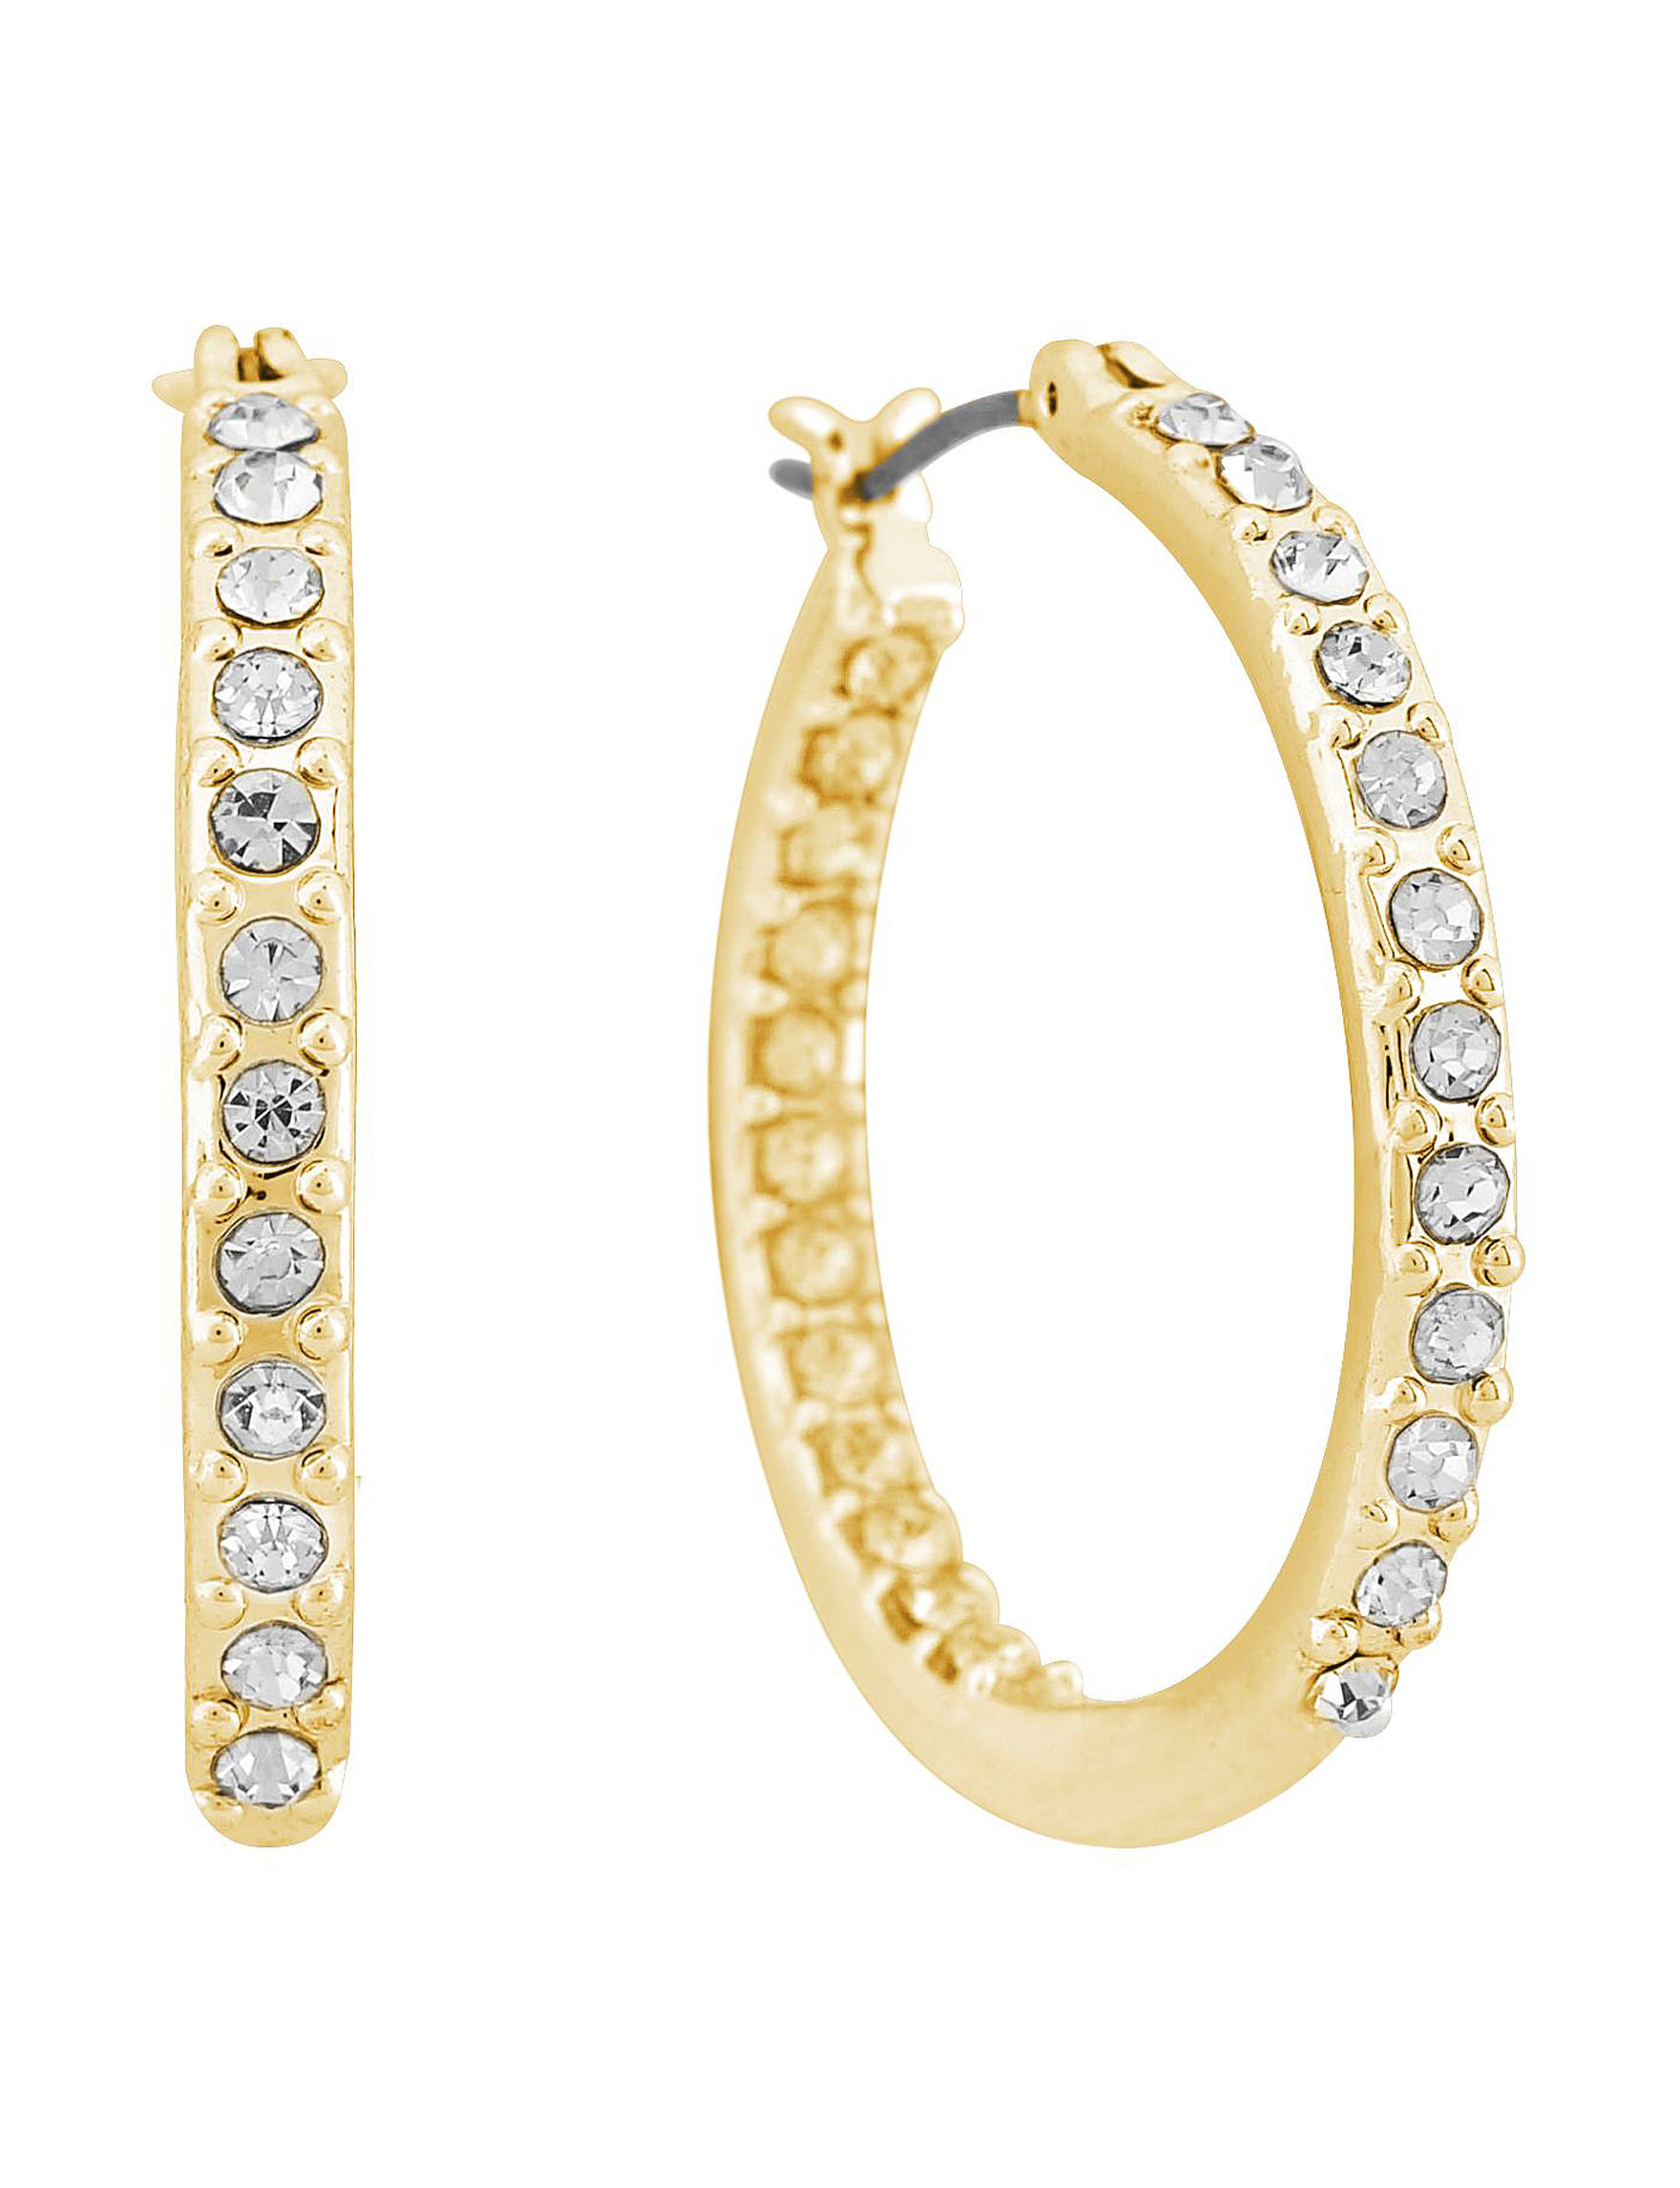 Gloria Vanderbilt Gold Hoops Earrings Fashion Jewelry